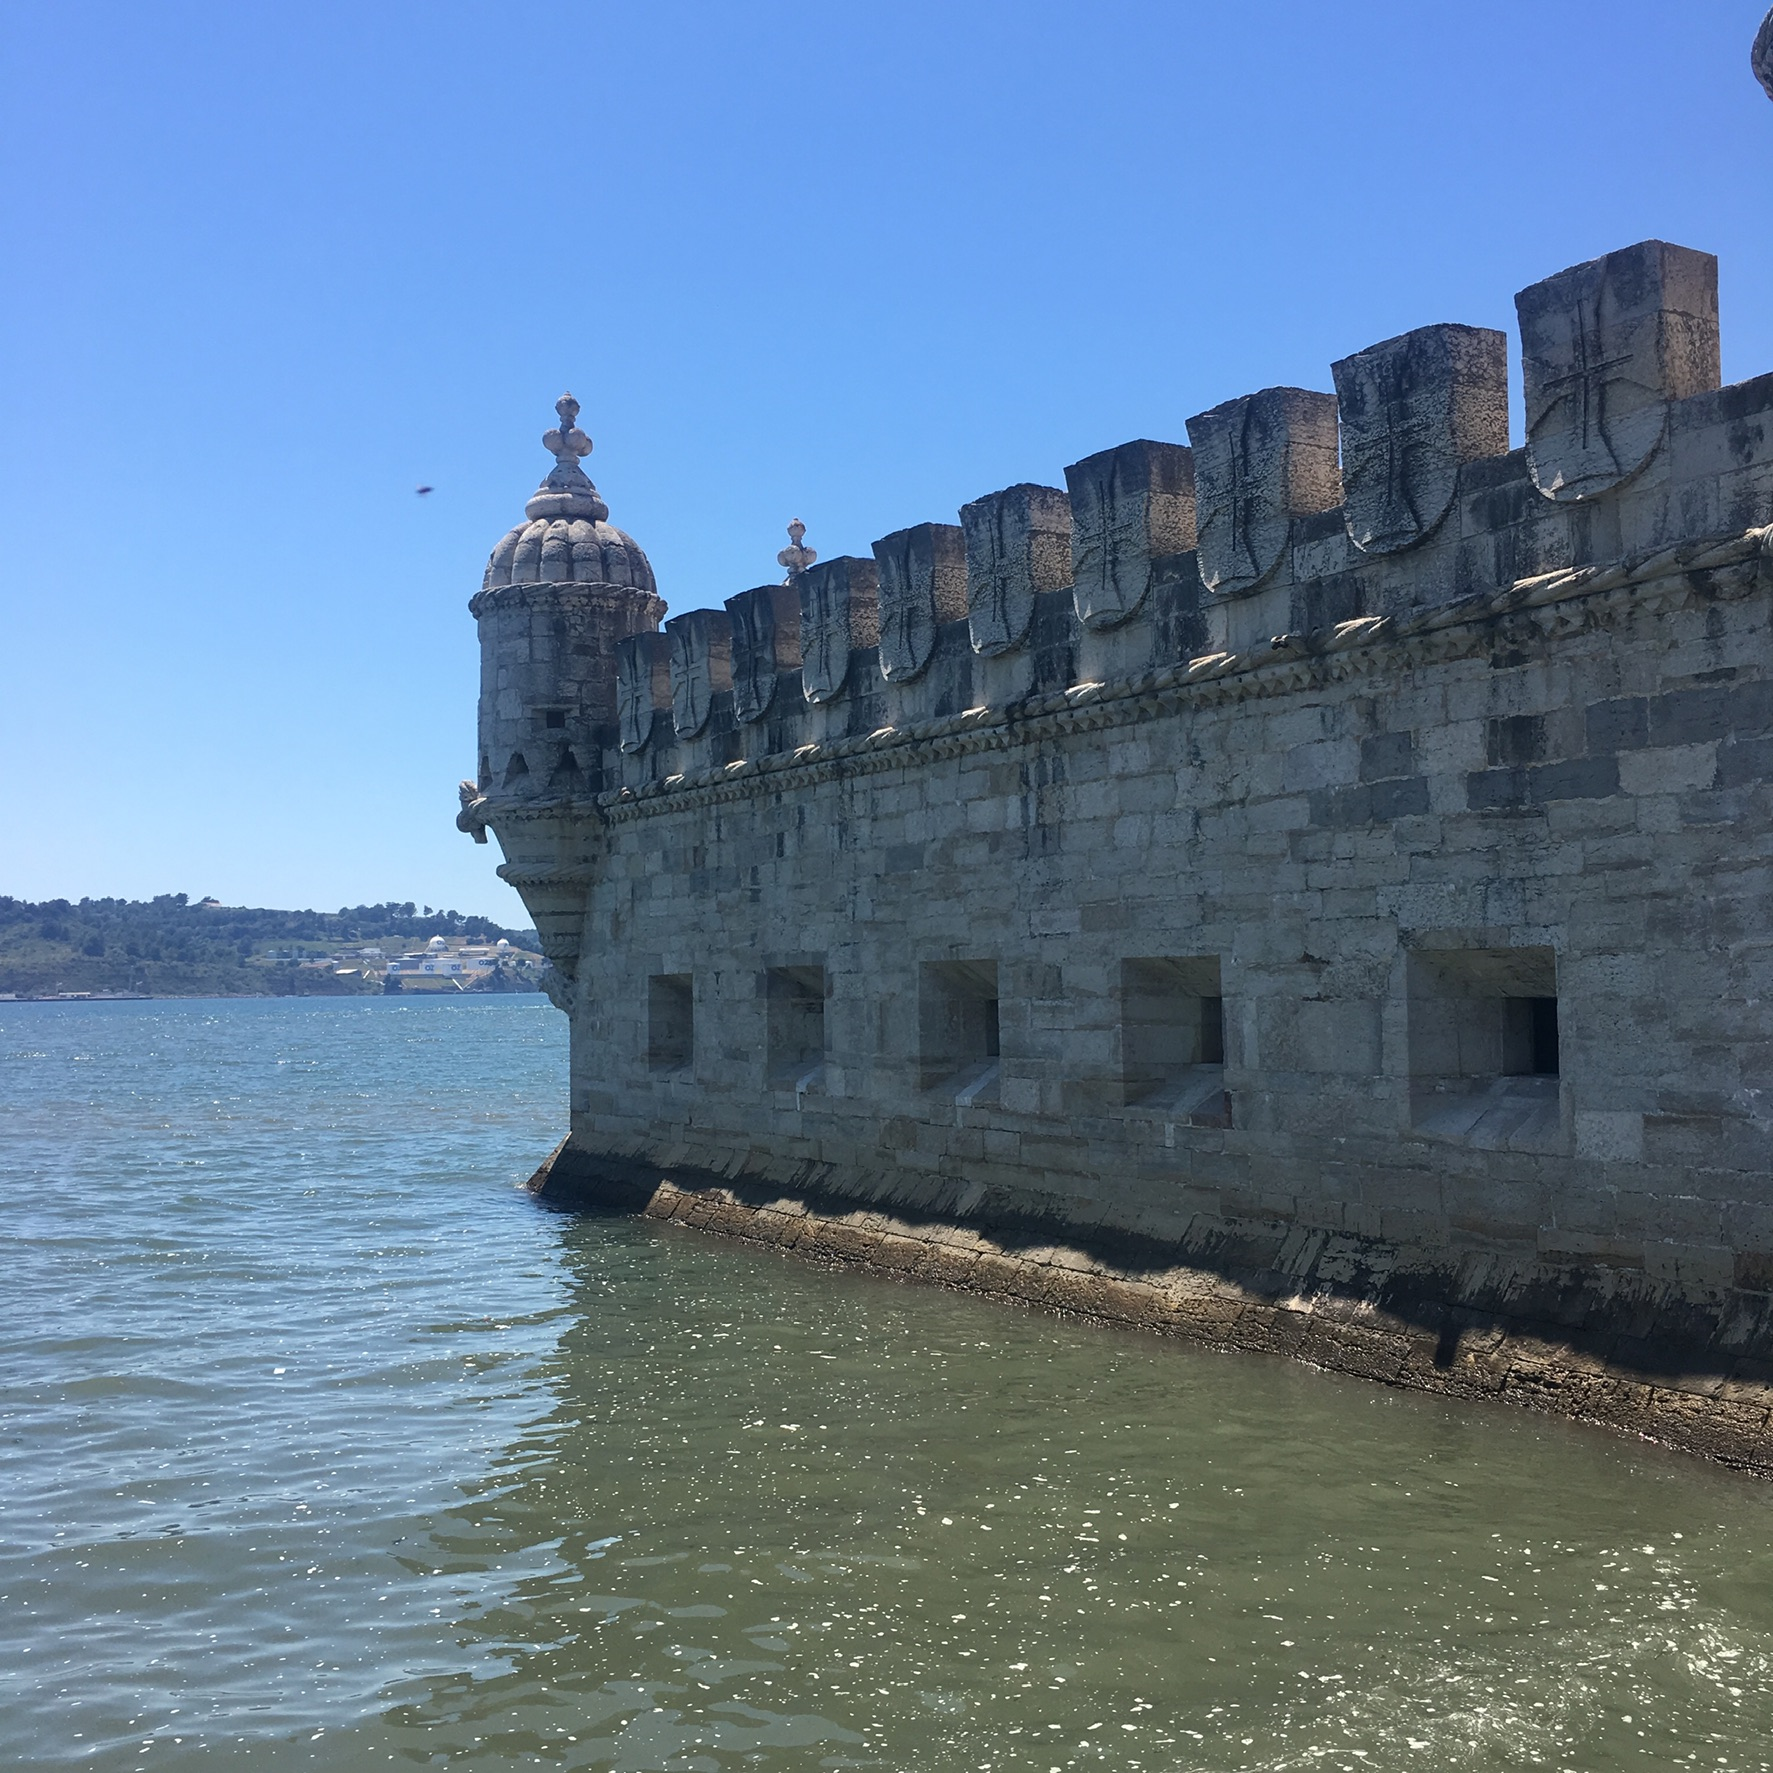 WAITING TO GO INTO BELÉM TOWER